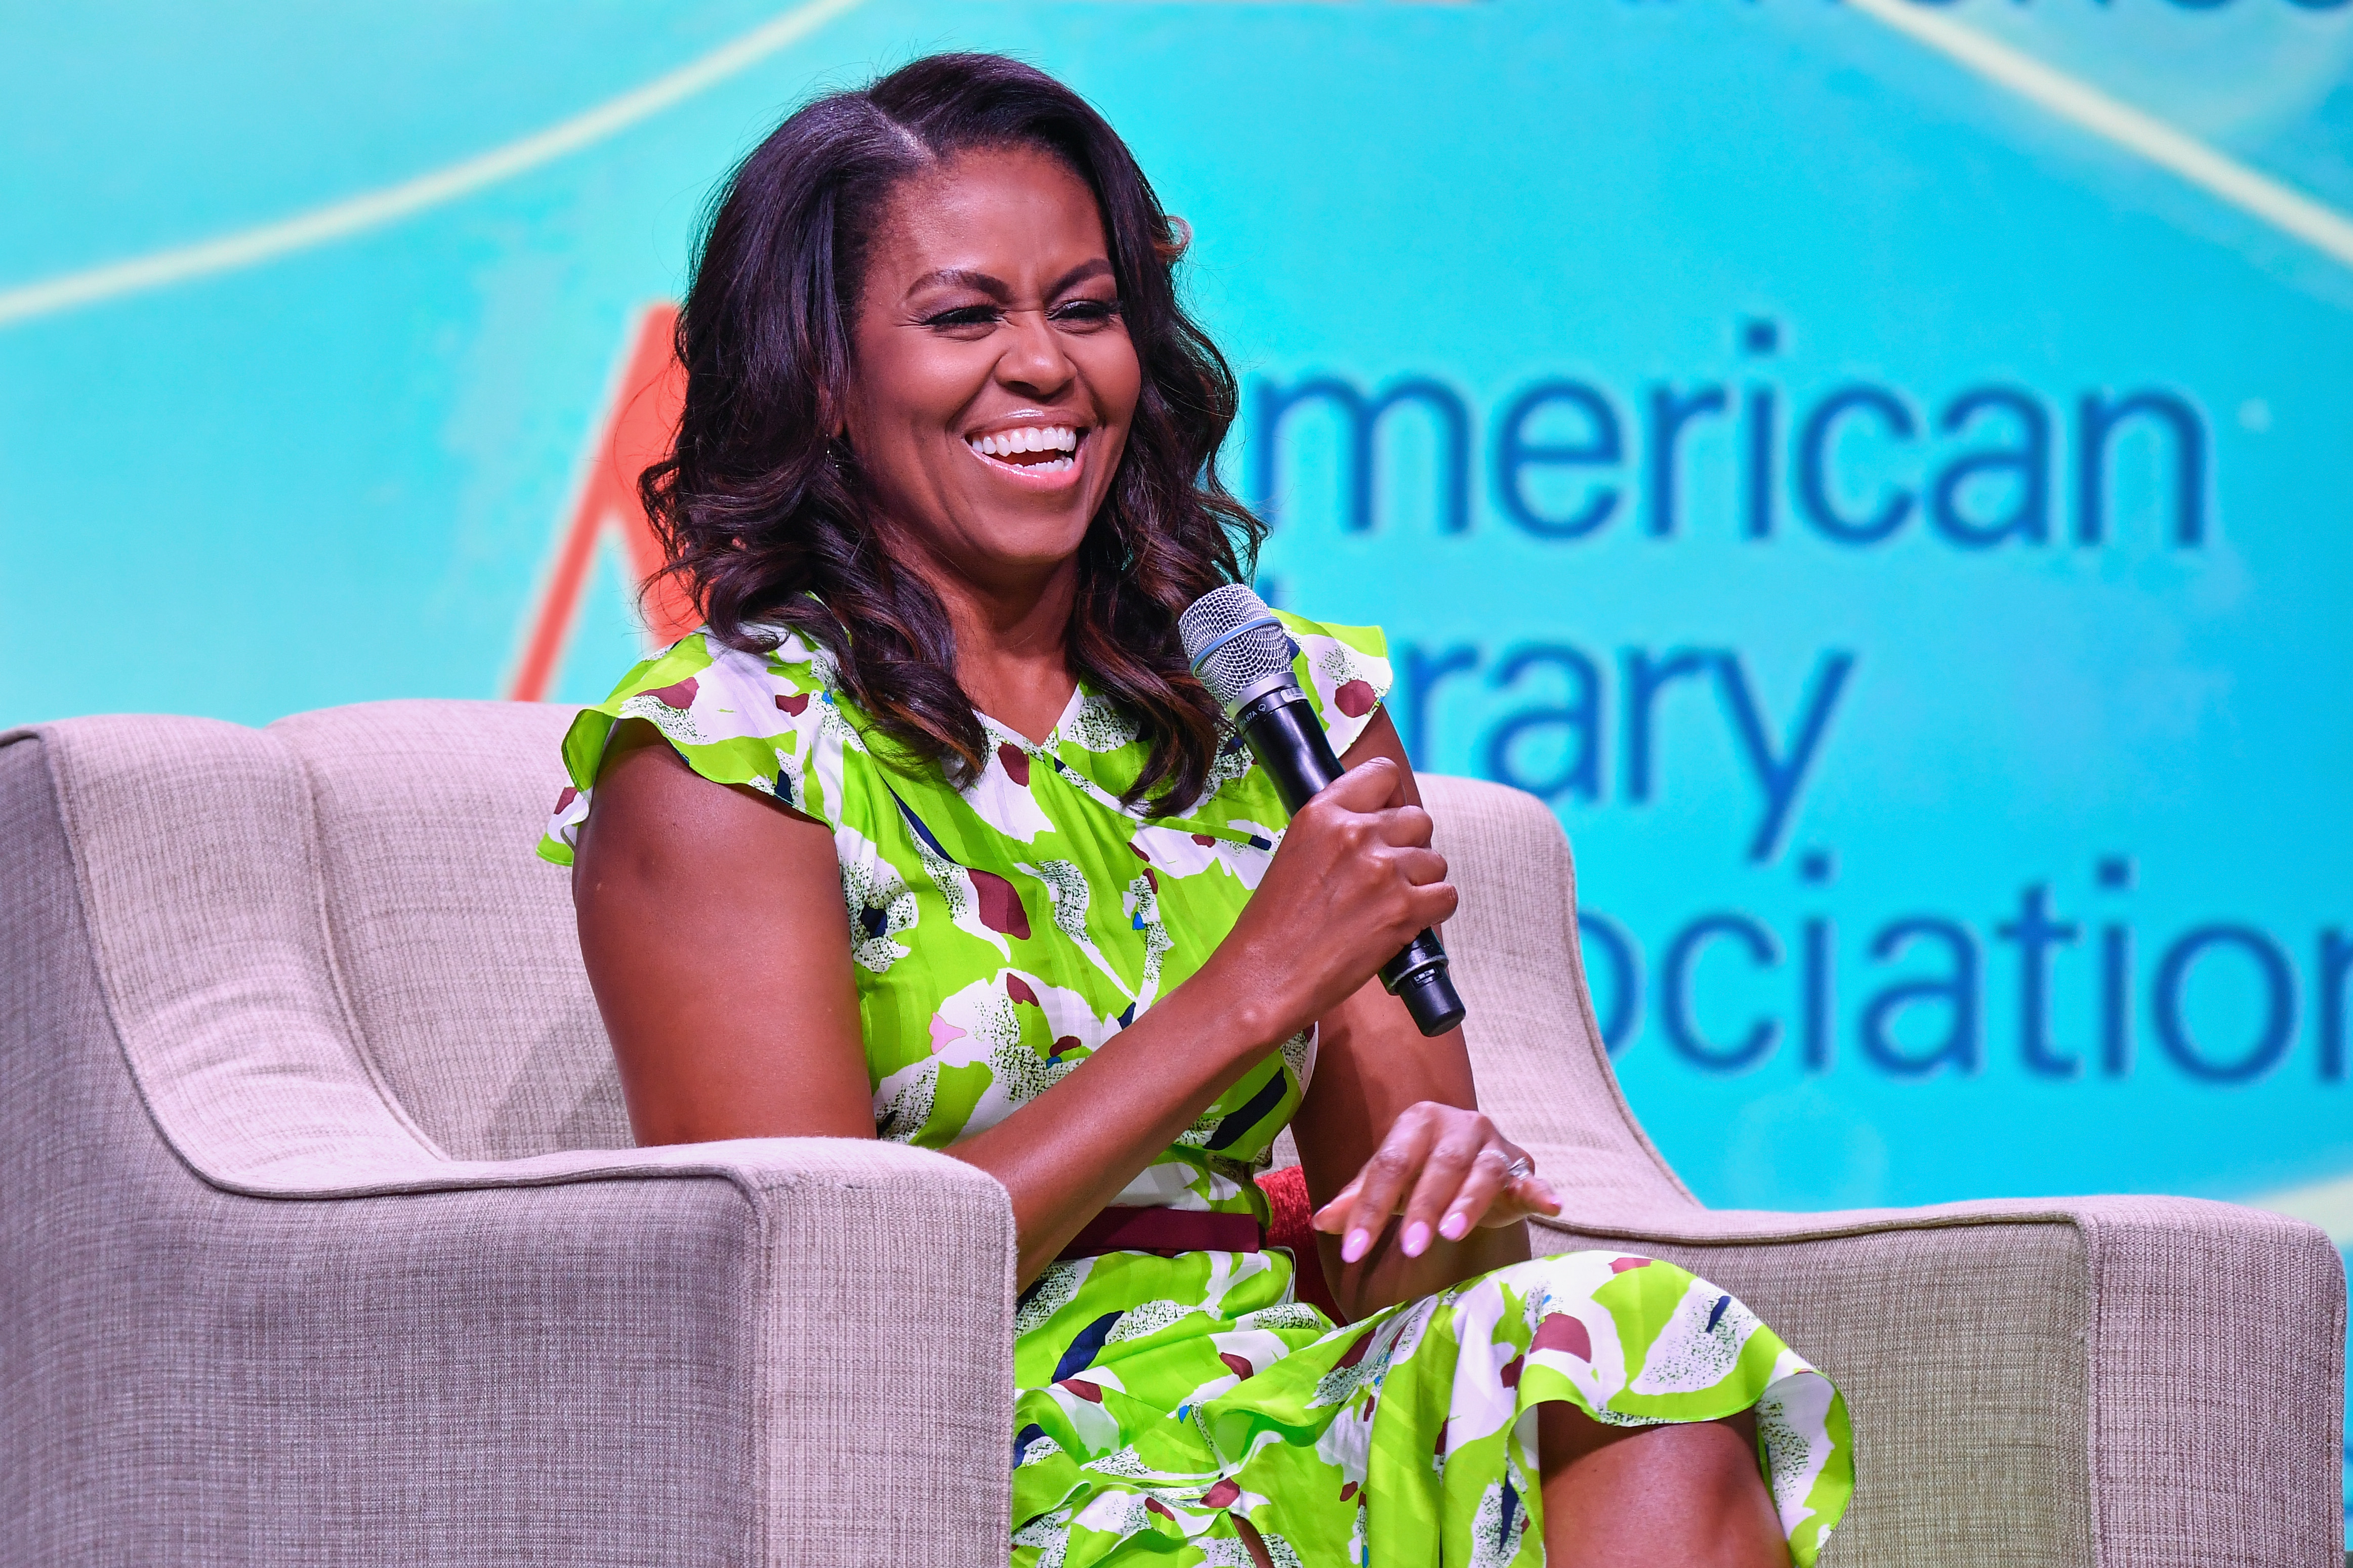 Former First Lady of the United States Michelle Obama speaks during the Opening General Session of the 2018 American Library Association Annual Conference at Ernest N. Morial Convention Center on June 22, 2018 in New Orleans, Louisiana.